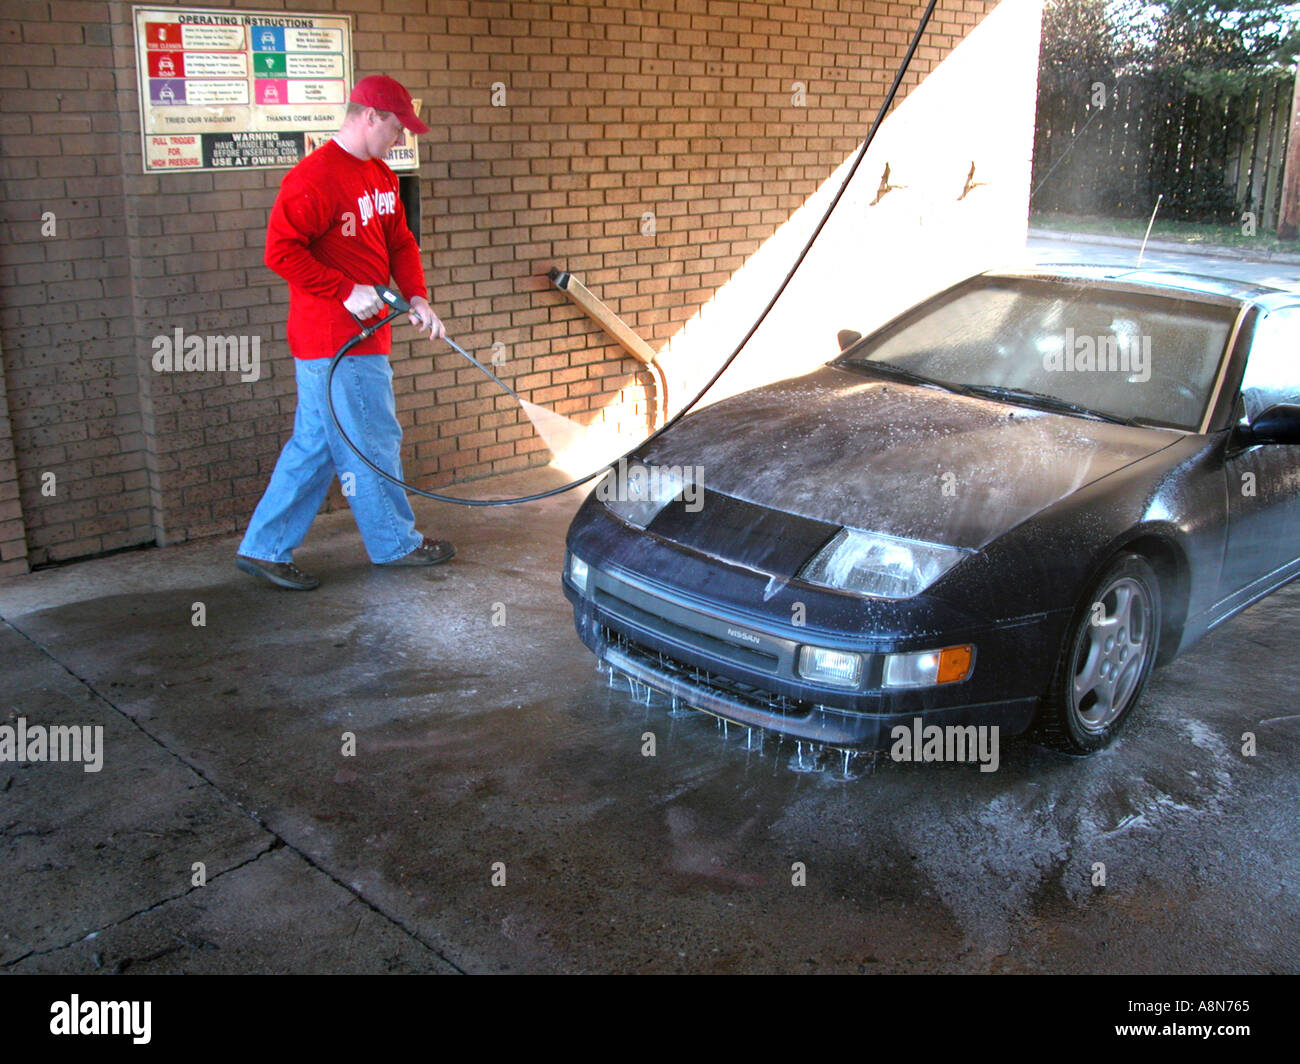 Man in self serve car wash cleaning his SUV Stock Photo